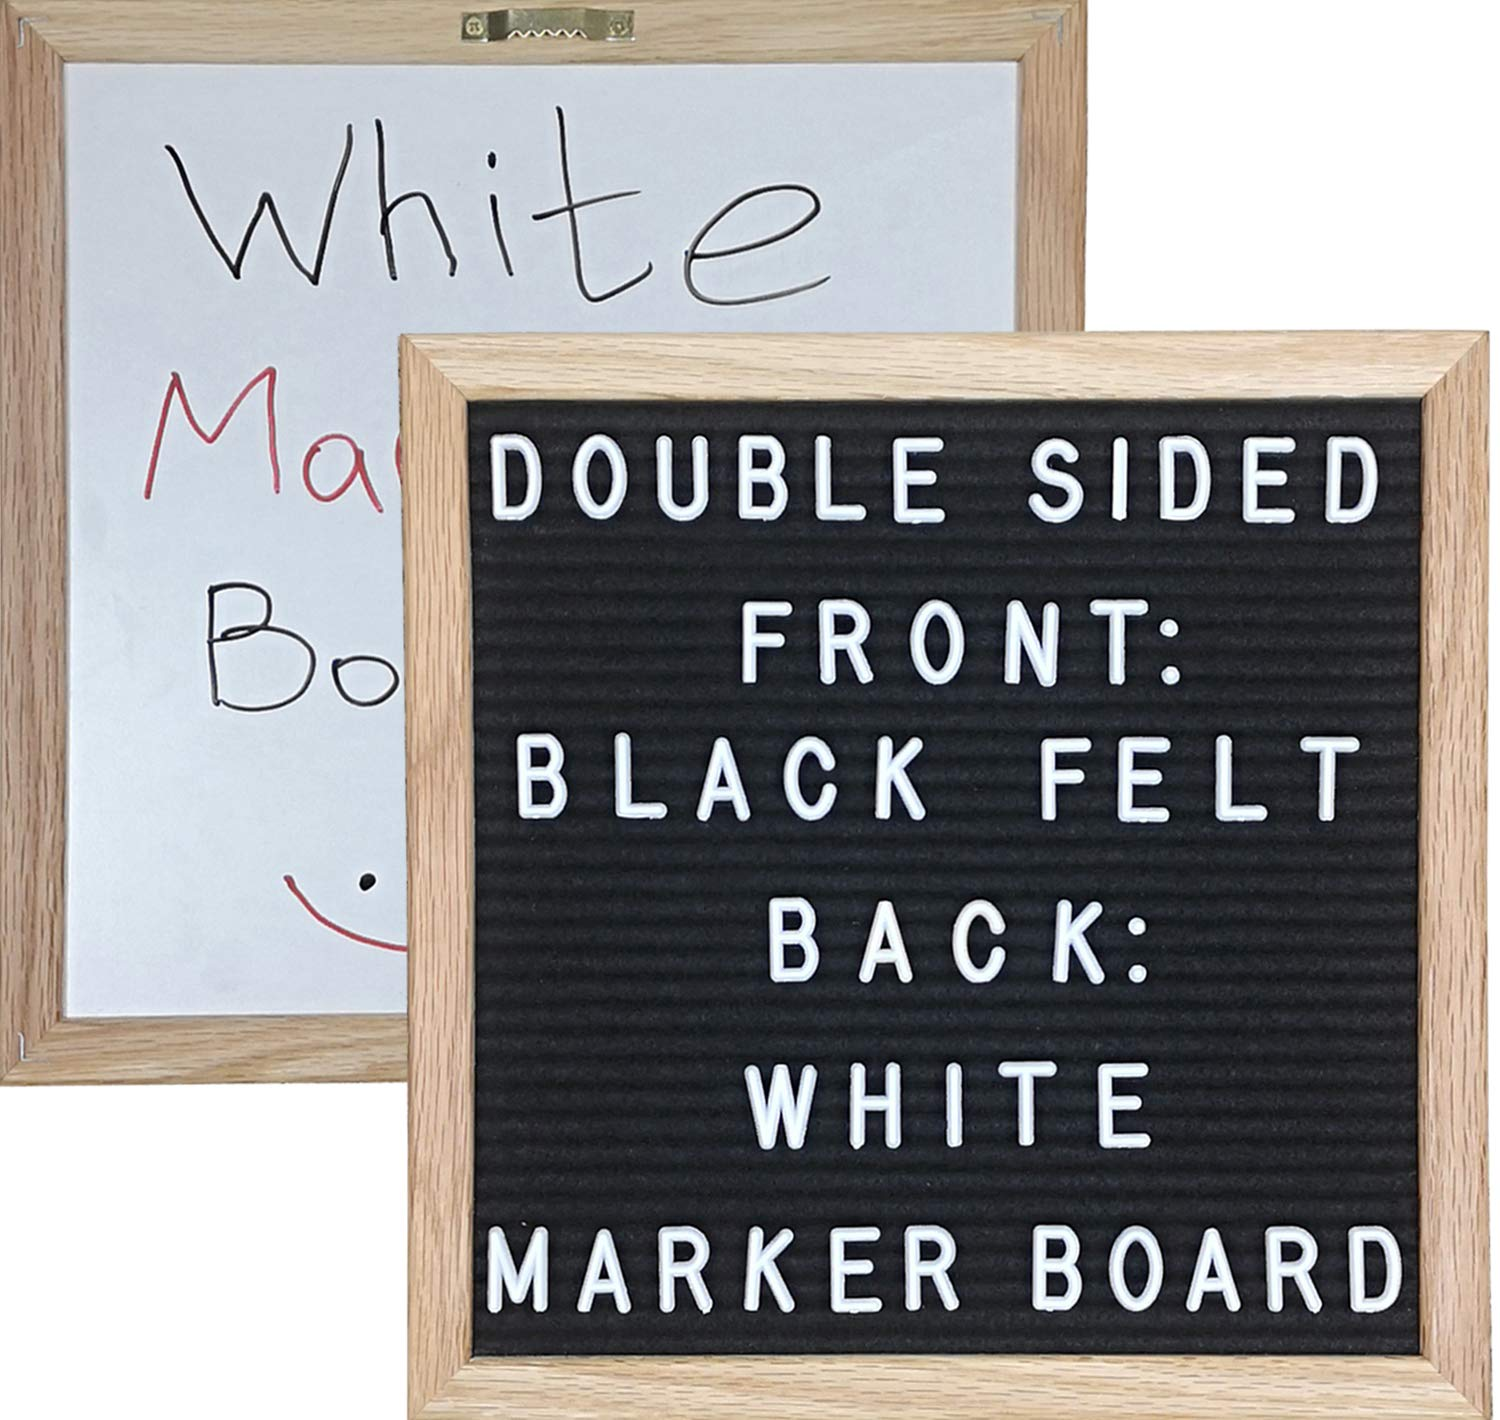 Double-Sided Black Felt Letter Board & White Marker Board 10X10 with 346 Letters Symbols & Emojis, Easel, 36 Slot Organizer Set, Cutters, Letter Pouch, and 5 Markers